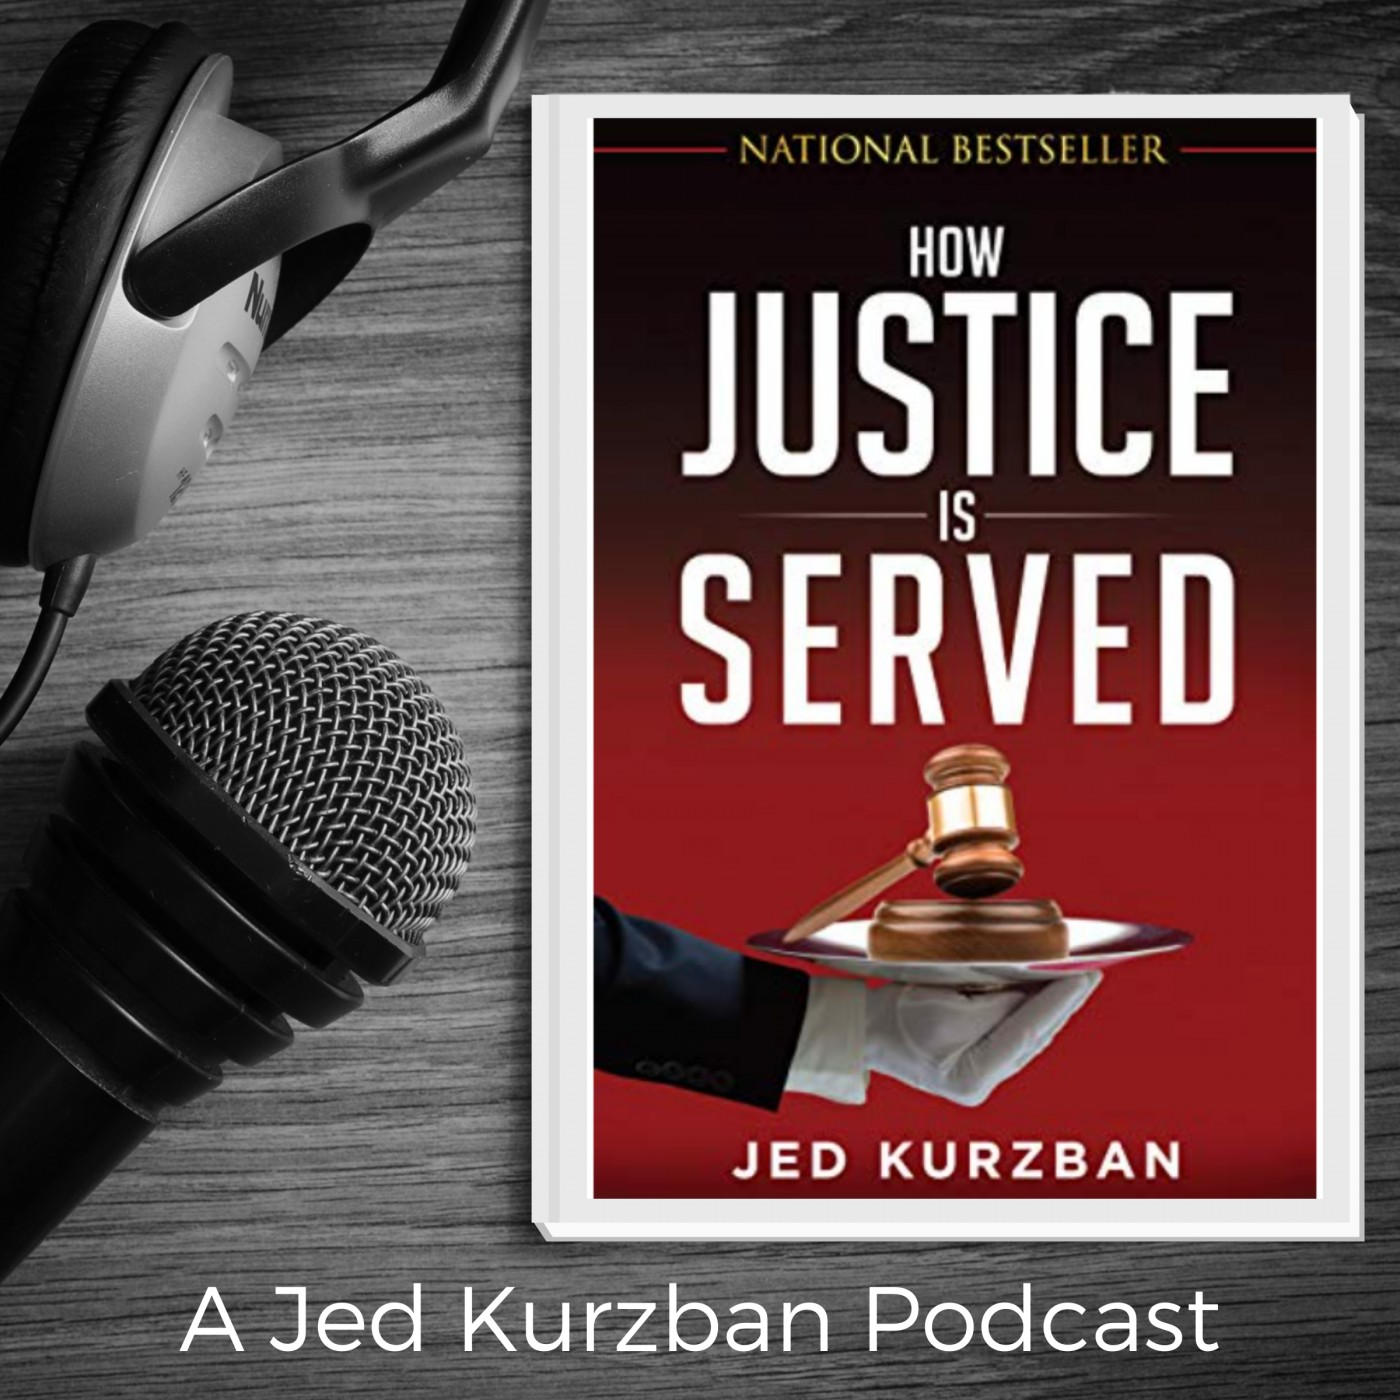 How Justice is Served, with Jed Kurzban